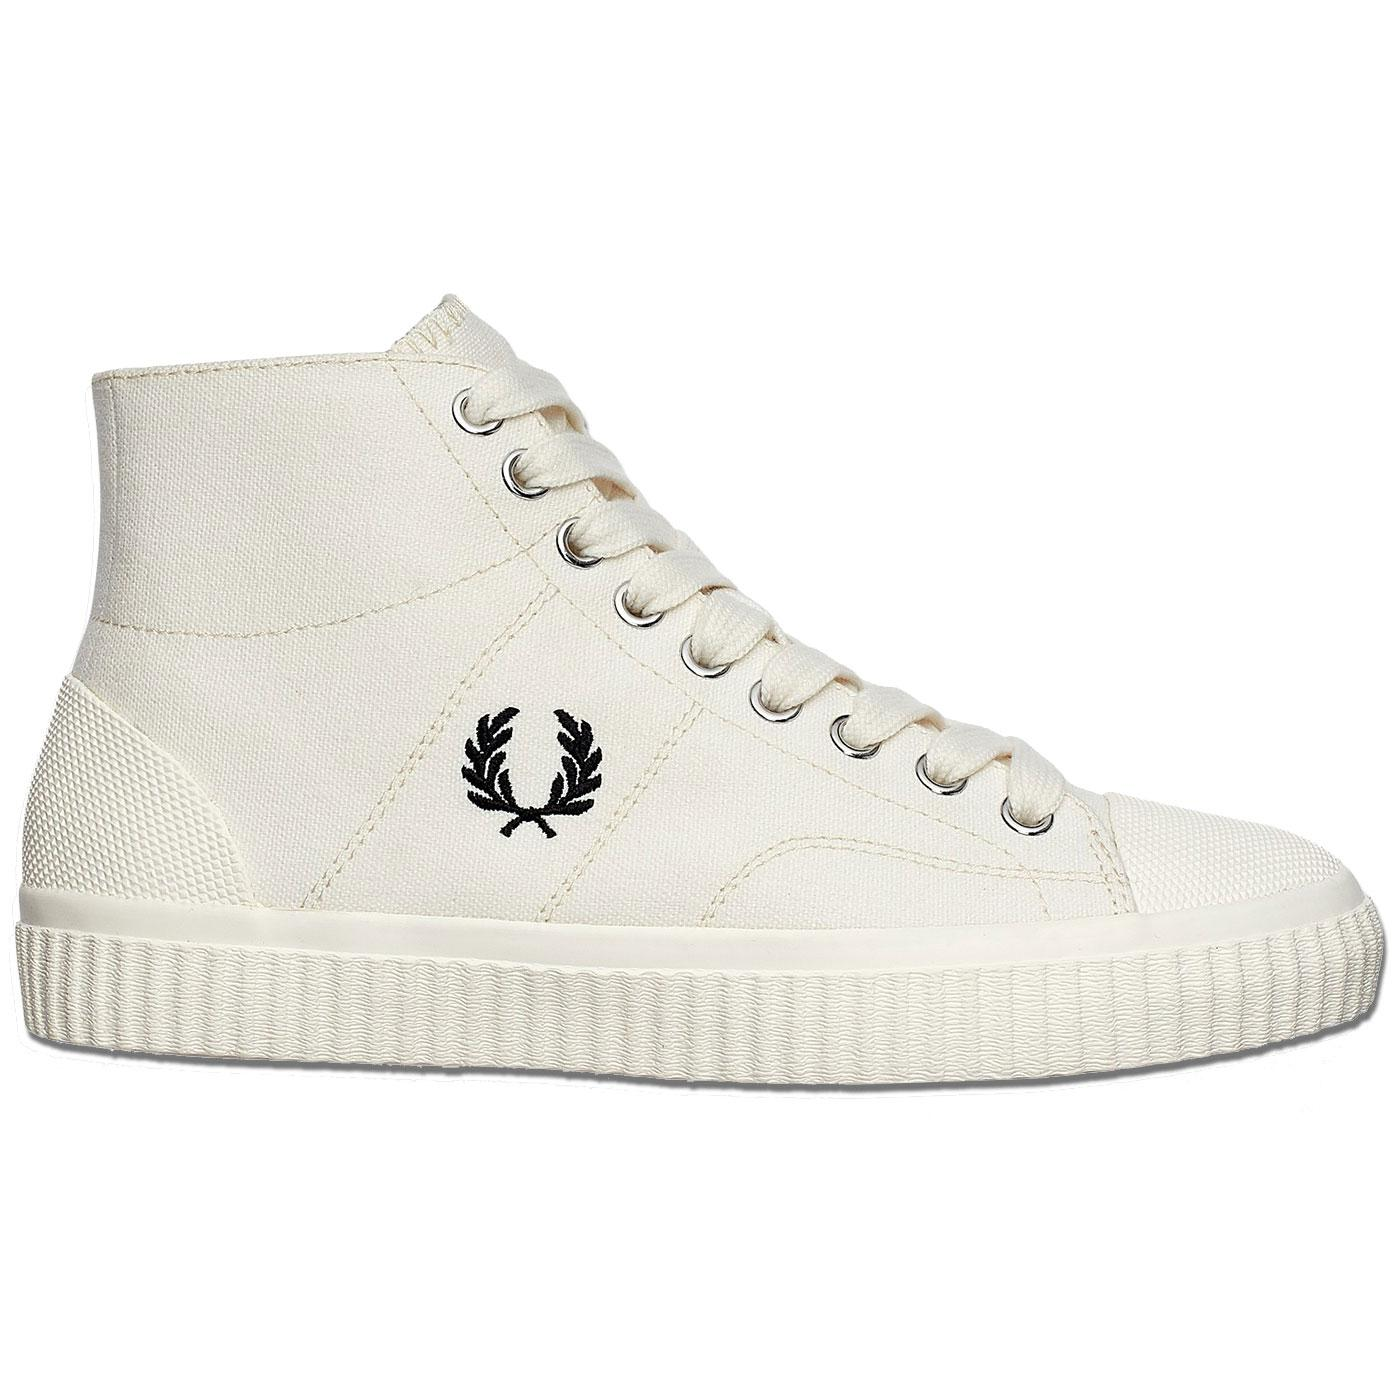 Hughes FRED PERRY Men's Retro Mid Canvas Trainers